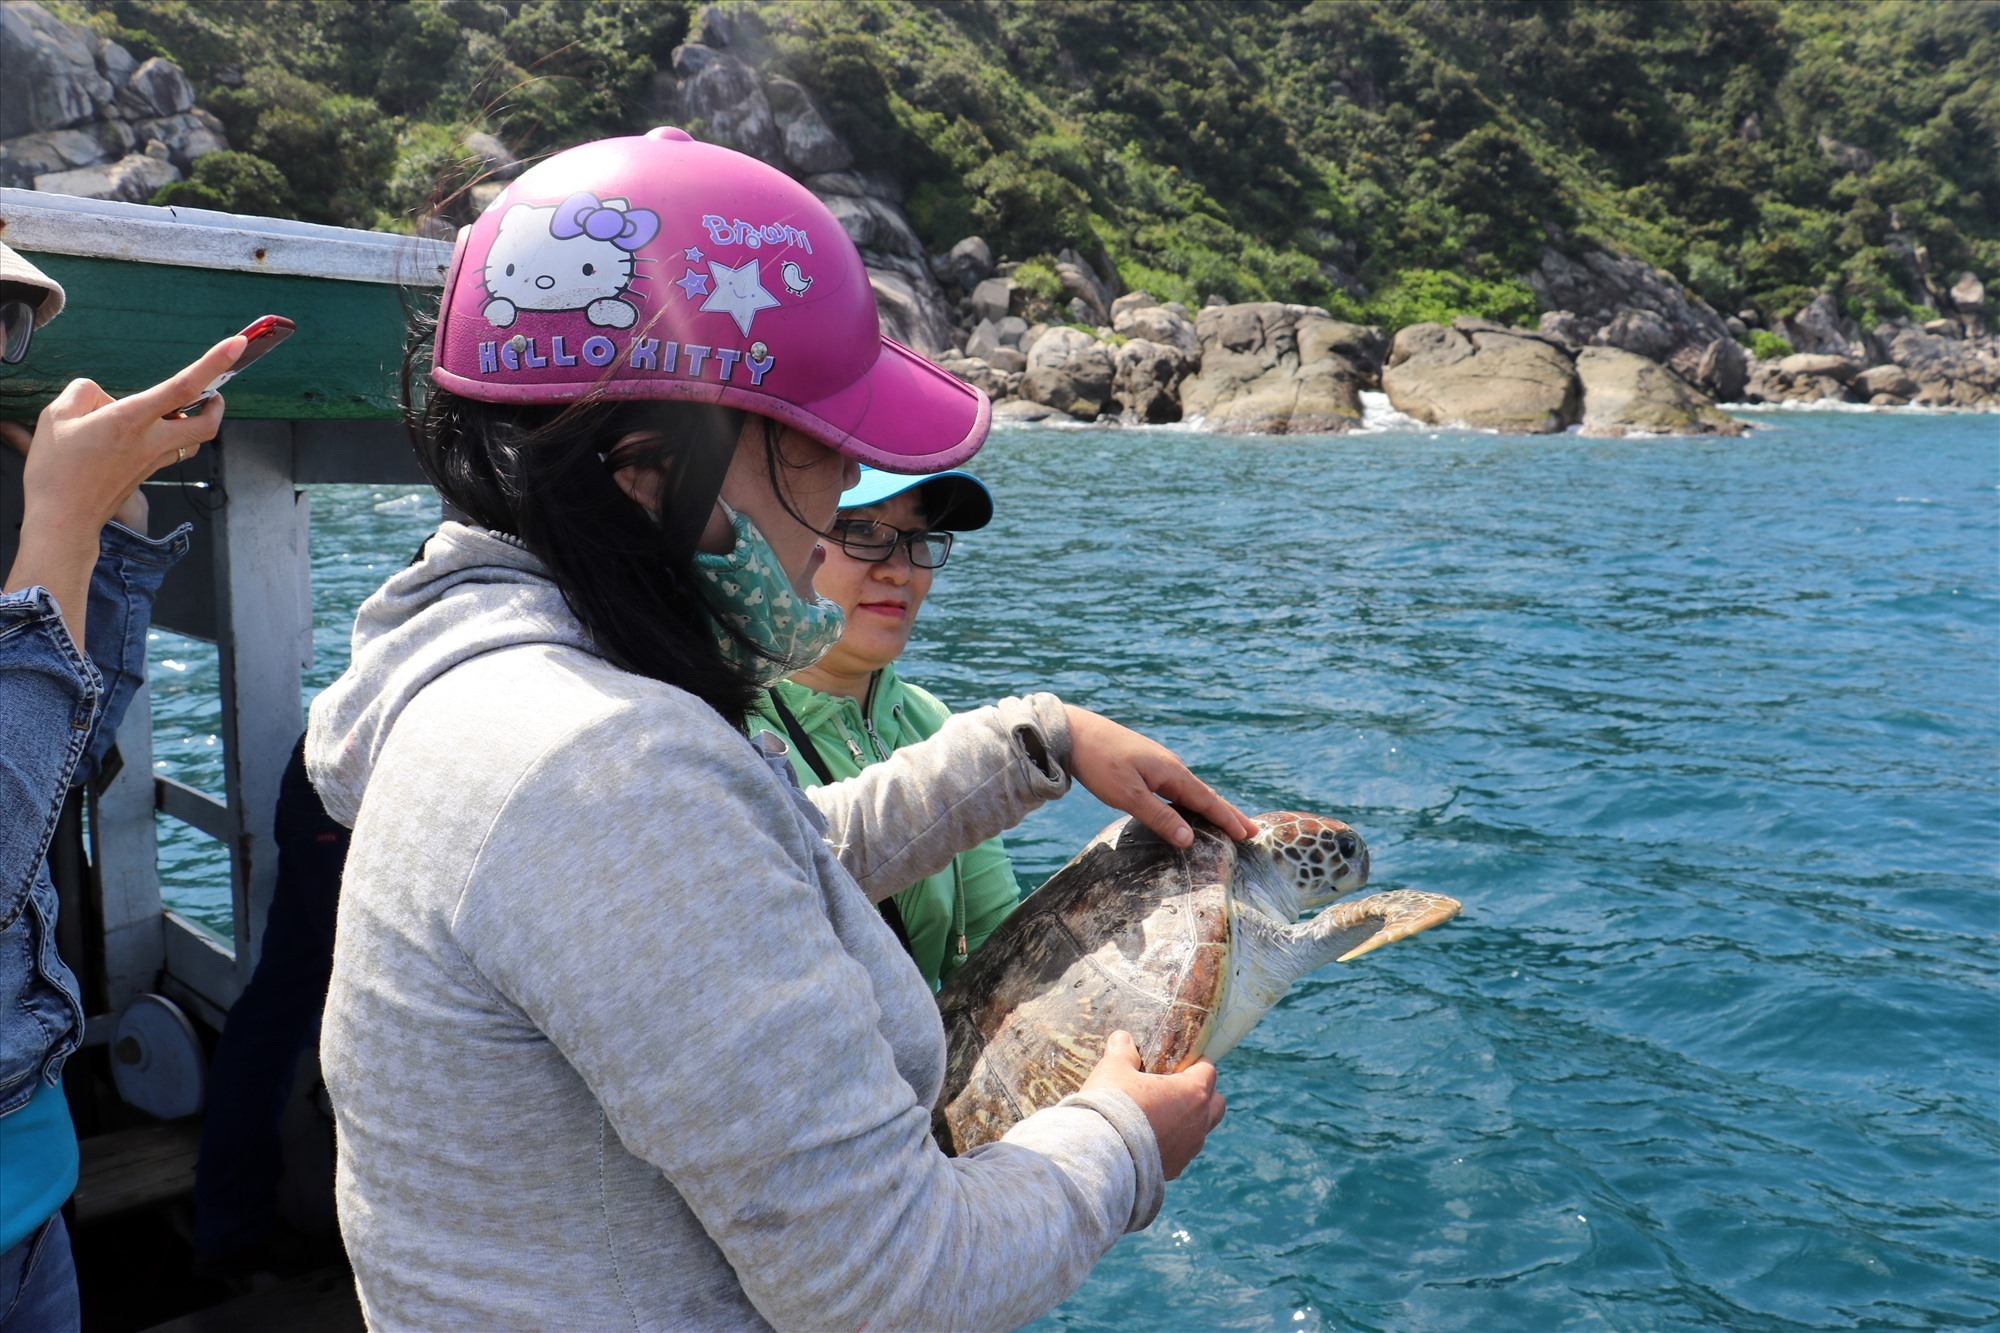 More and more sea turtles are released into the wild by the local people.